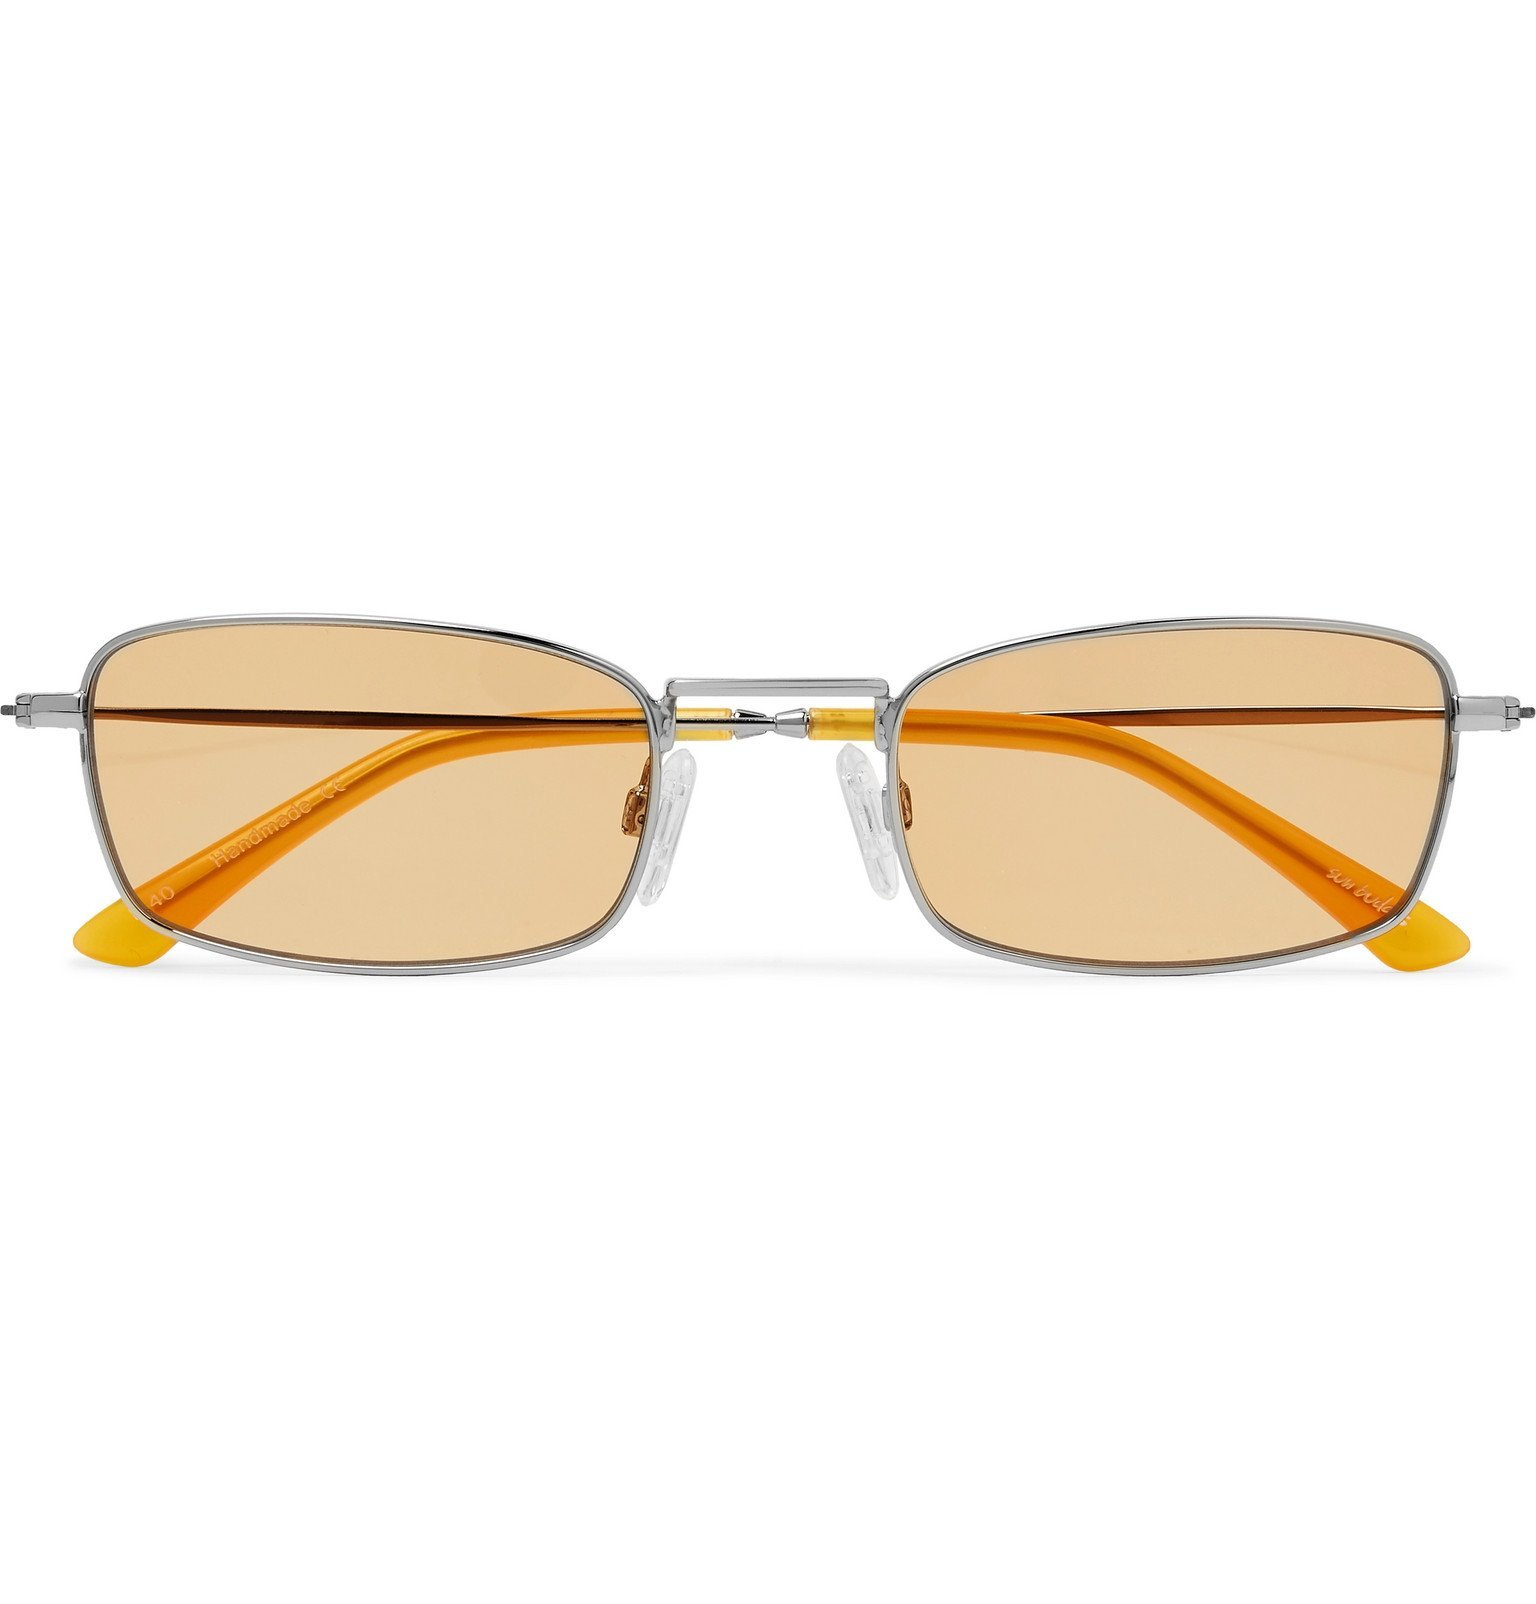 Photo: Sun Buddies - E-40 Rectangle-Frame Stainless Steel and Acetate Sunglasses - Silver